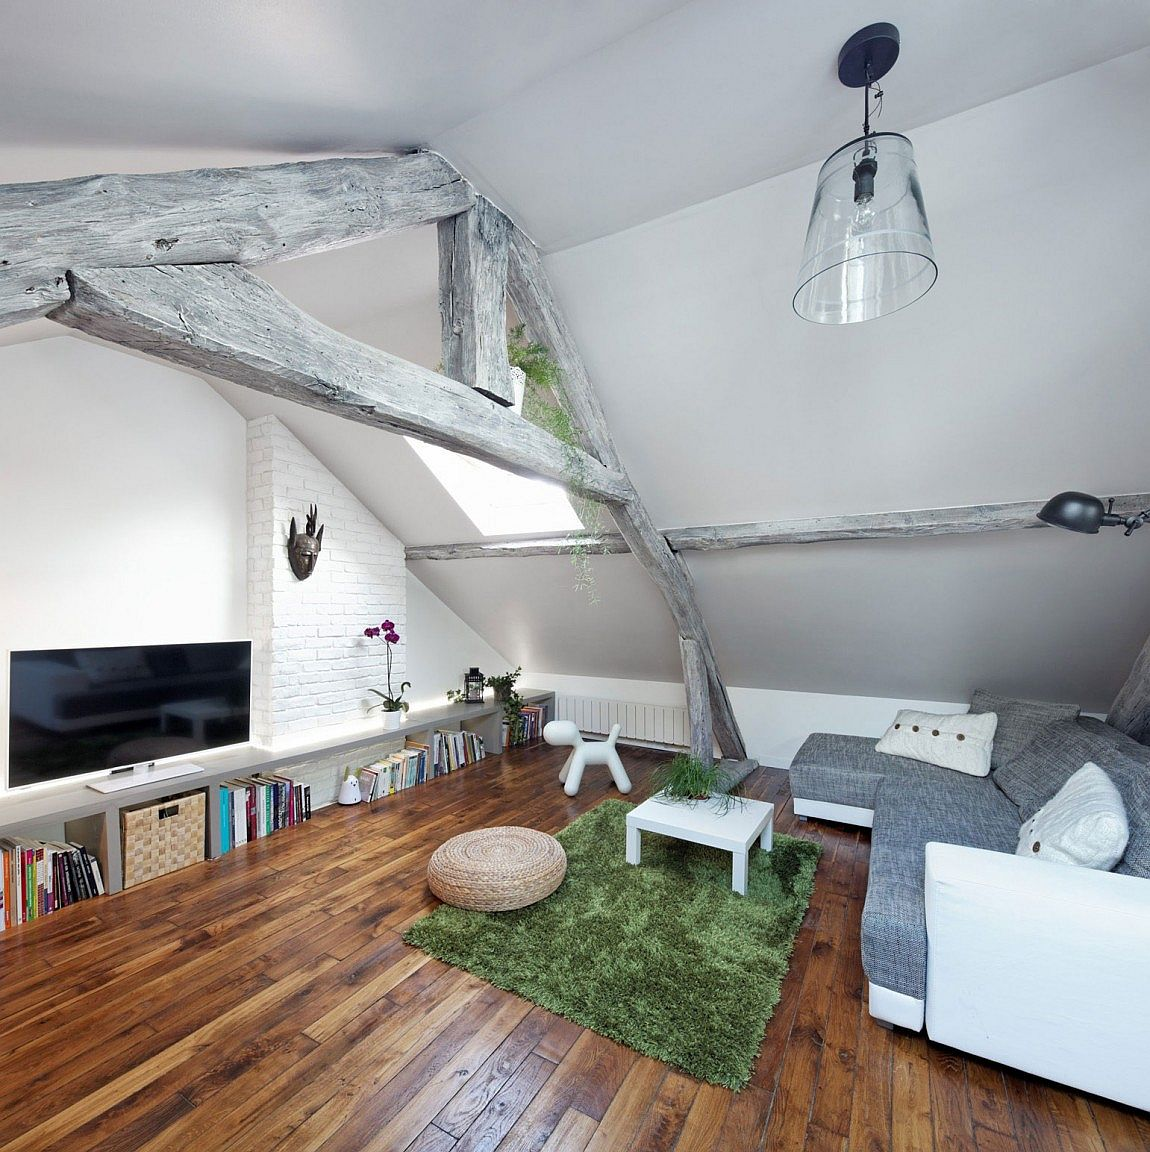 Fabulous living space full of textural beauty Rustic Modern Attic Apartment Renovation Oozes Parisian Panache!